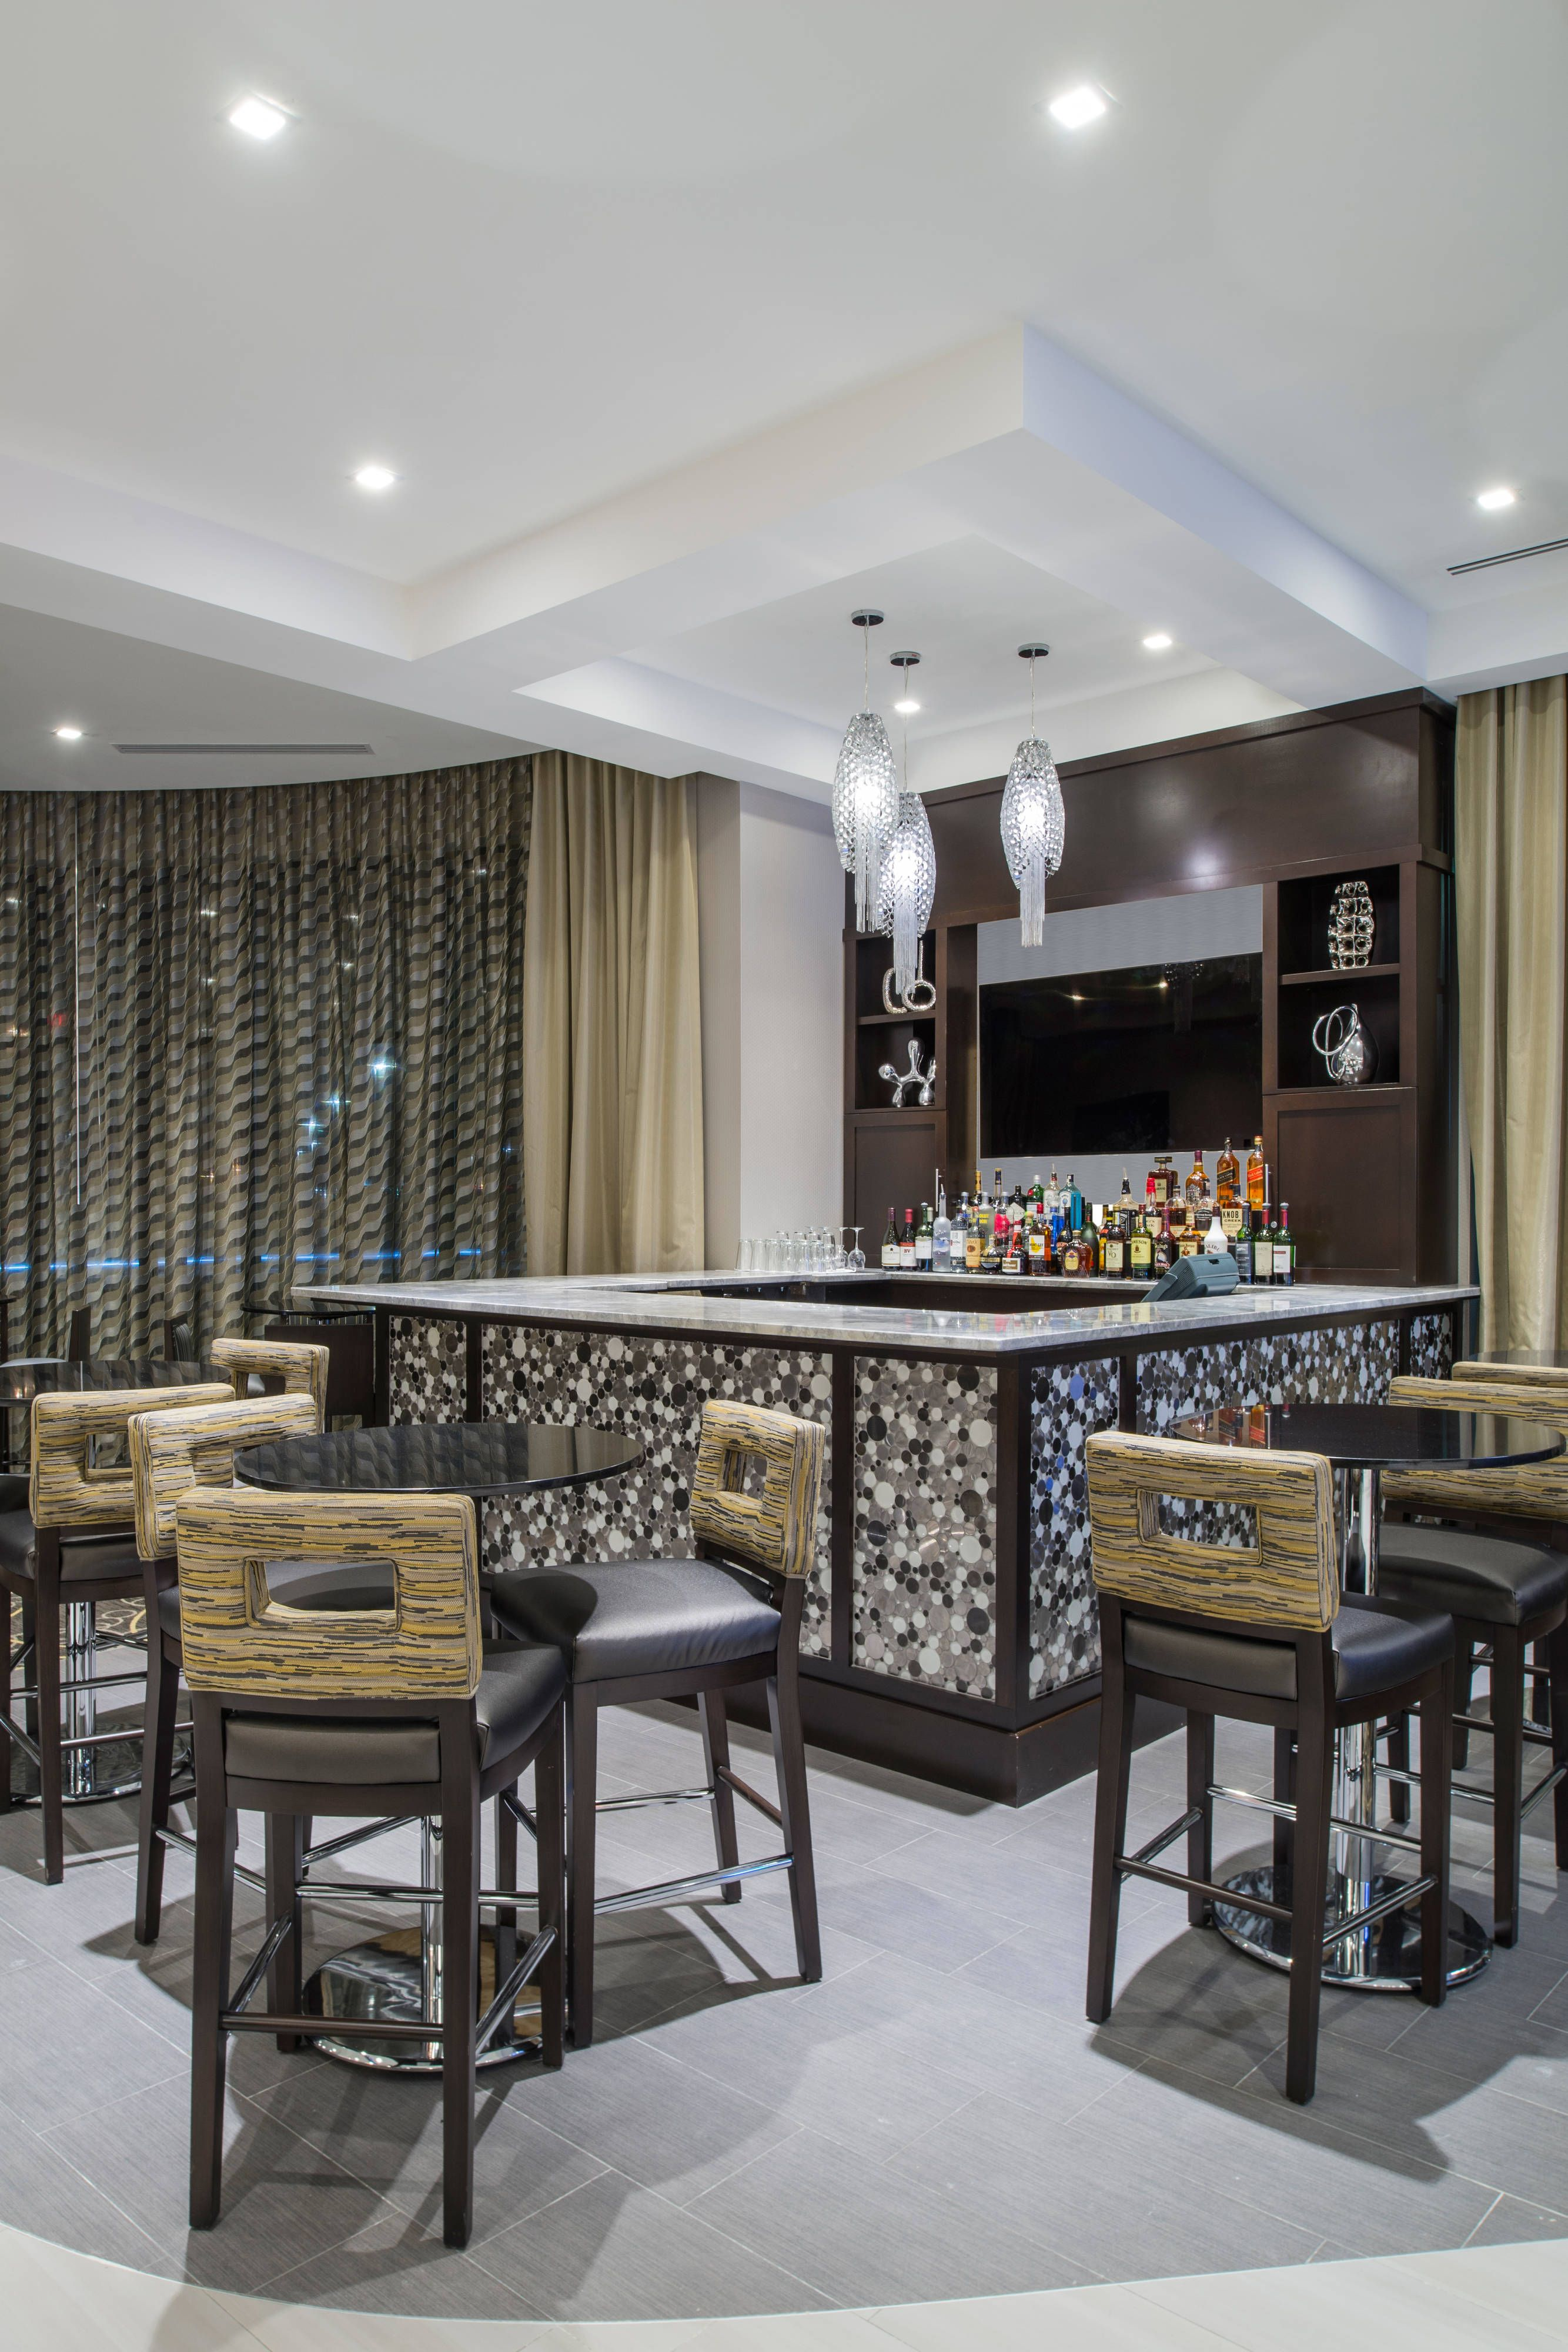 TownePlace Suites Boston Logan Airport/Chelsea Lobby Bar